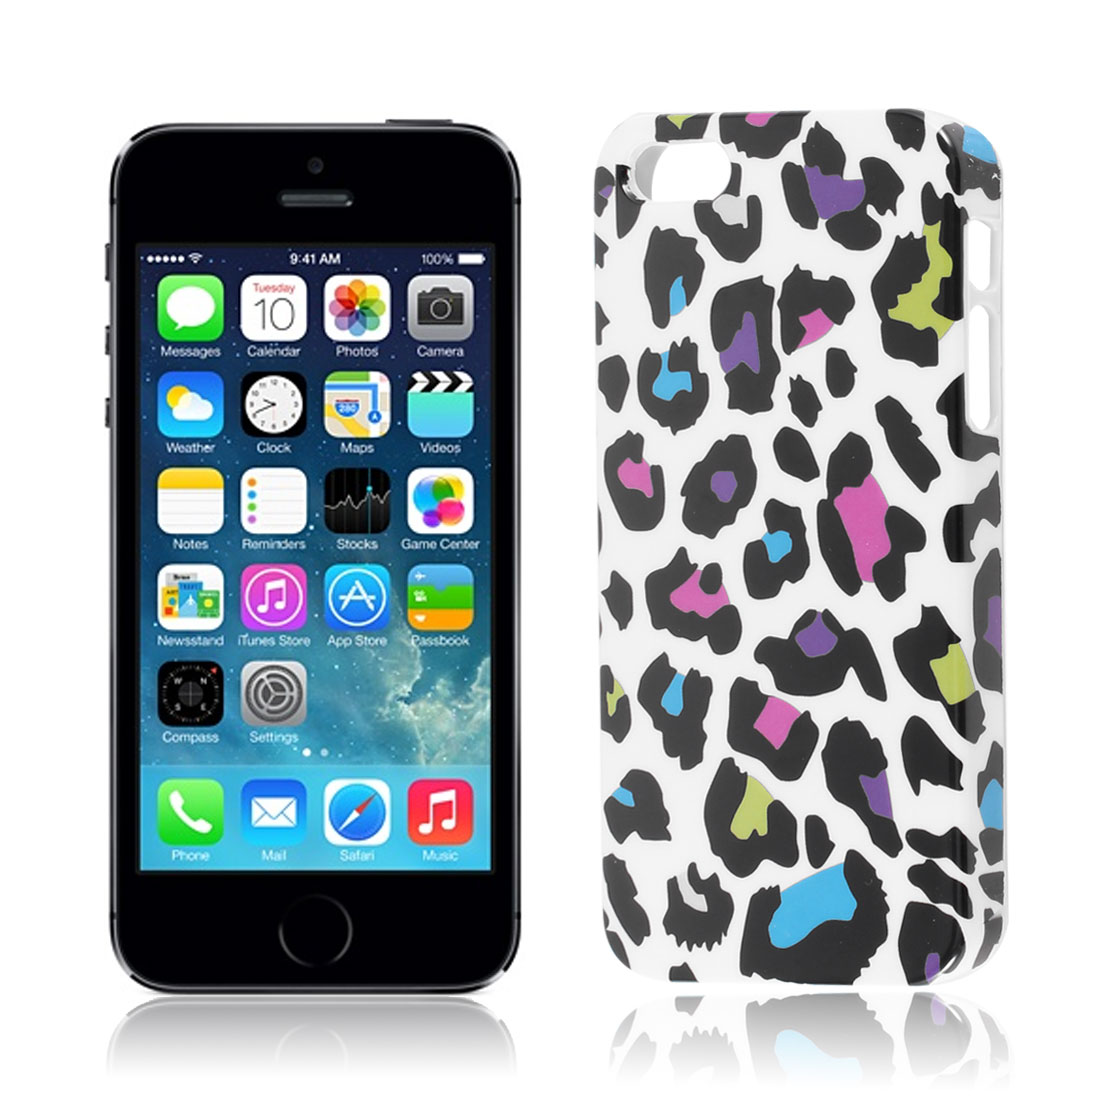 Leopard Print Hard Protector Skin Back Case Cover White Black for iPhone 5 5S